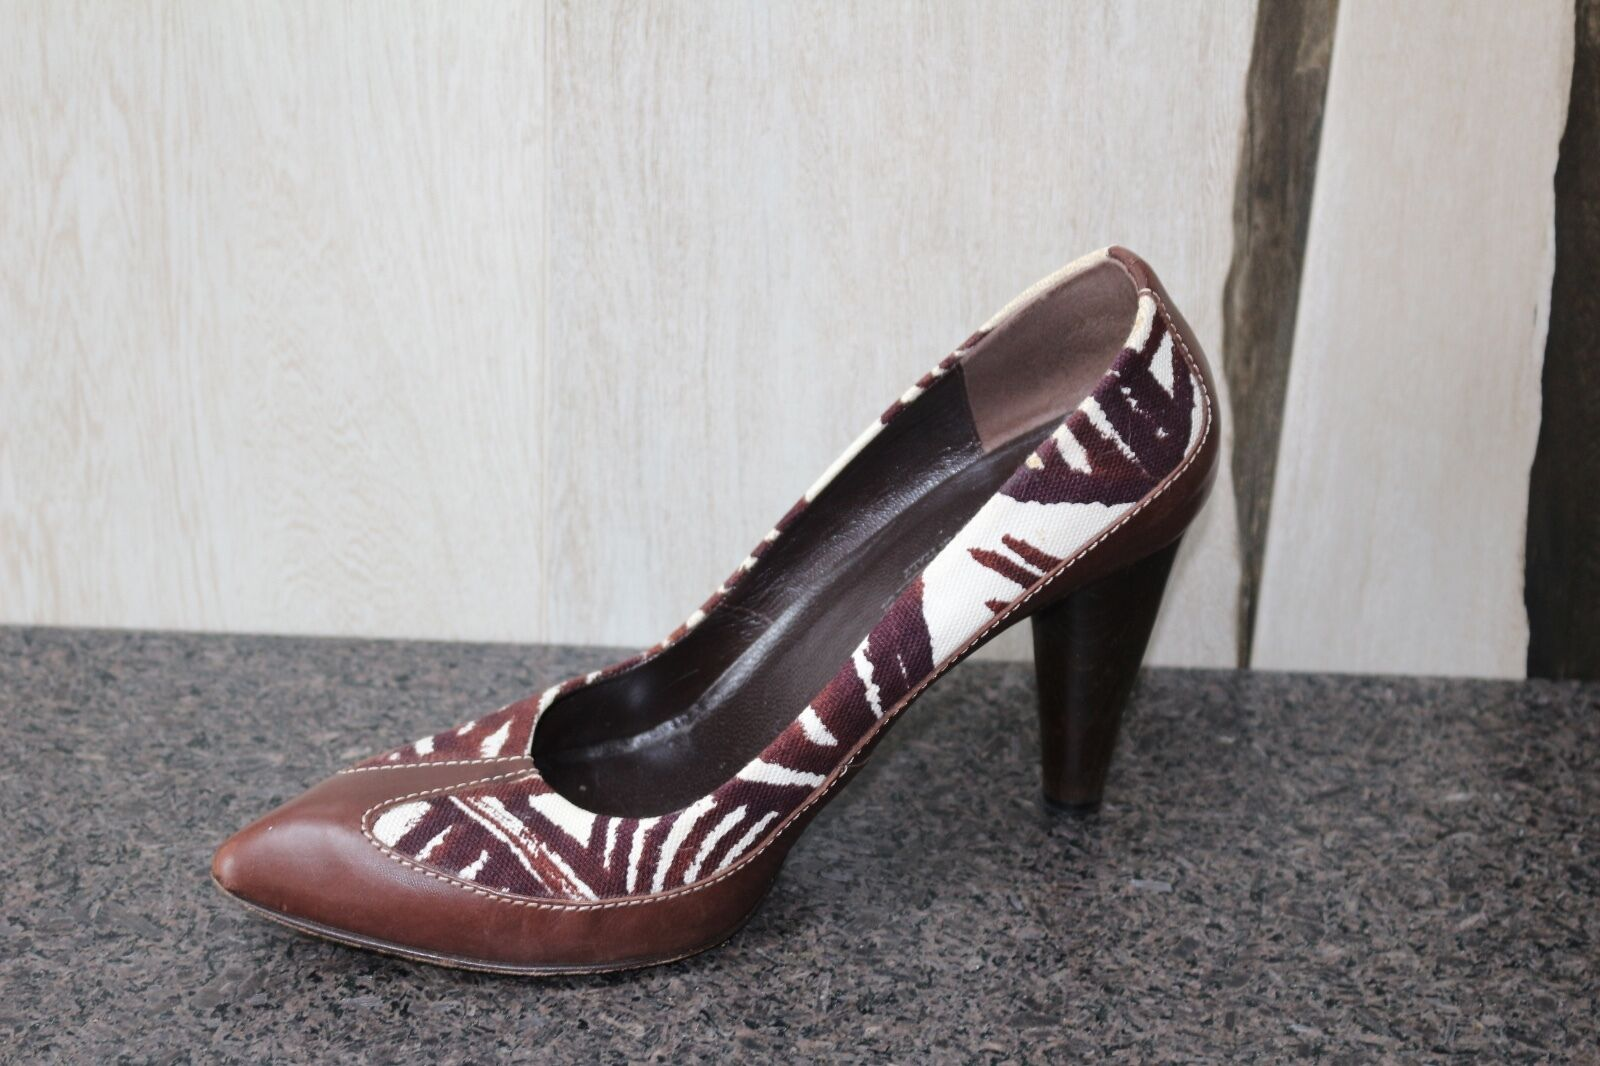 Worn with love: Max Mara Safari Print Canvas/ Leder Classic Pumps Schuhes 40